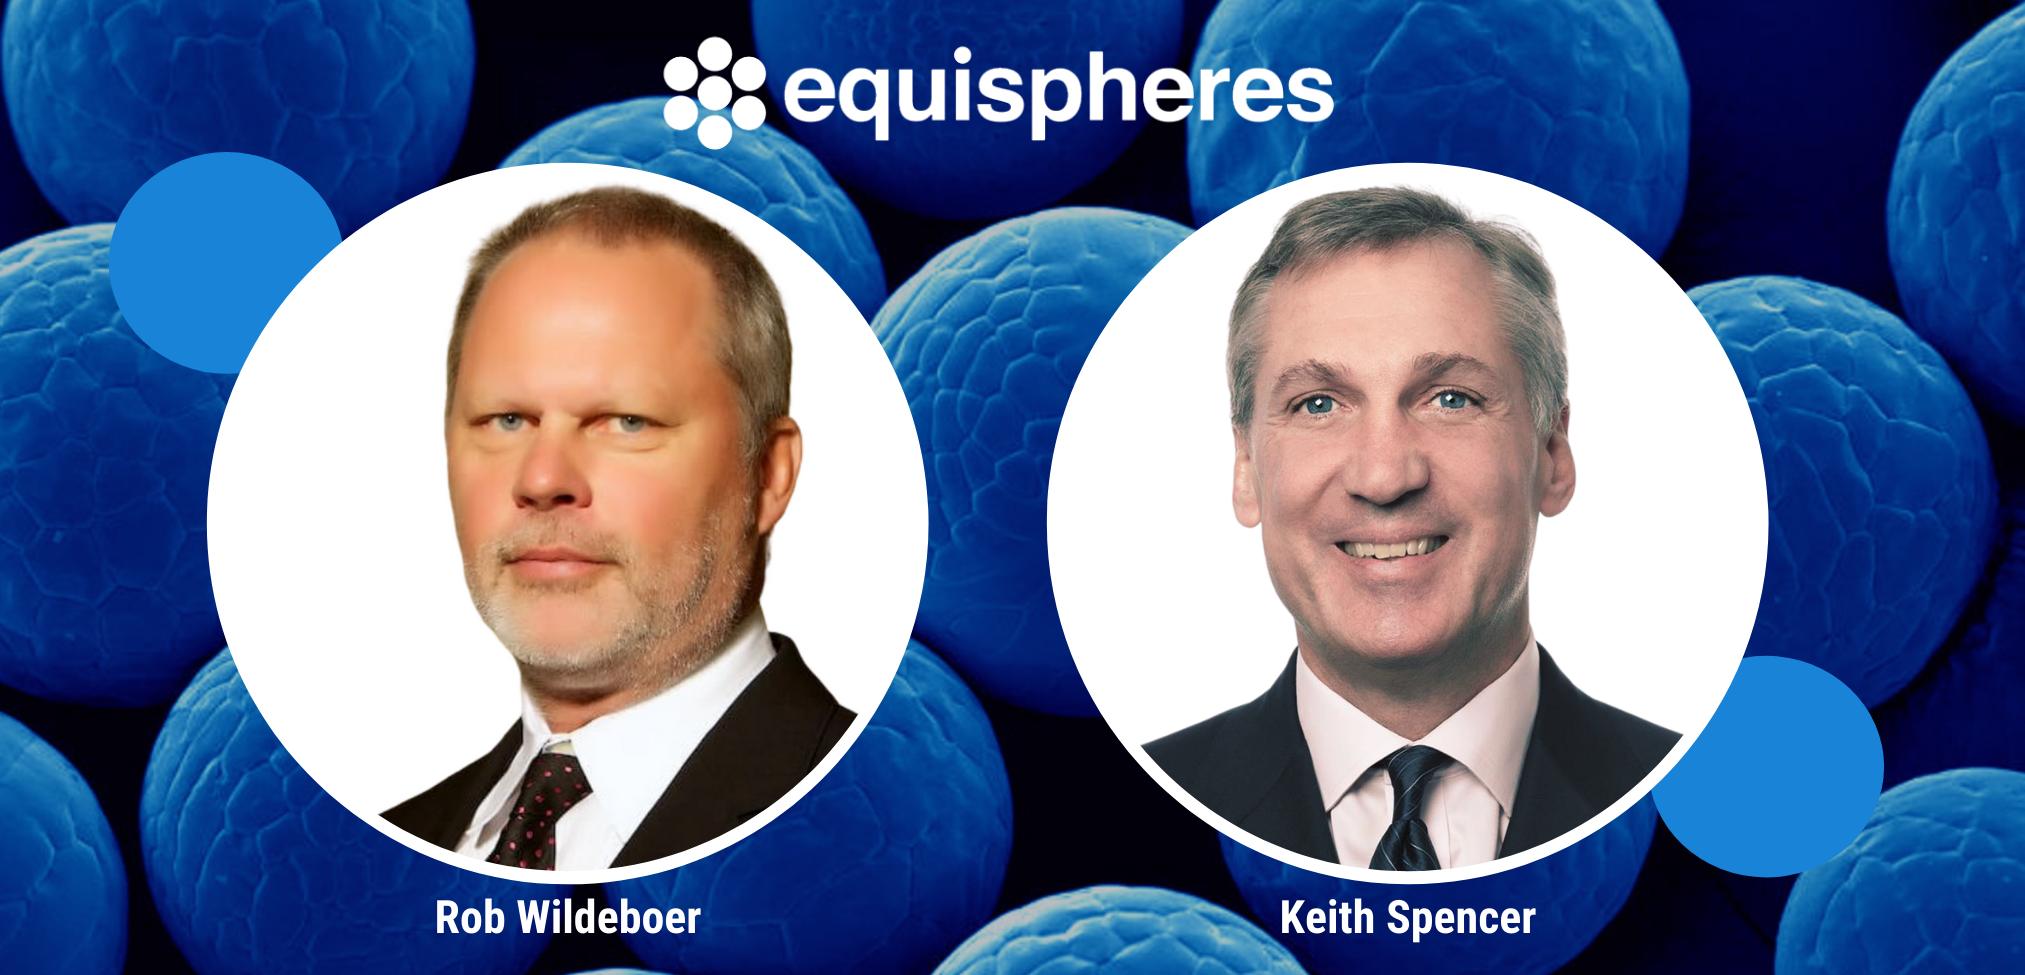 Equispheres has added Rob Wildeboer and Keith Spencer to its Board of Directors. Photo via Equispheres.